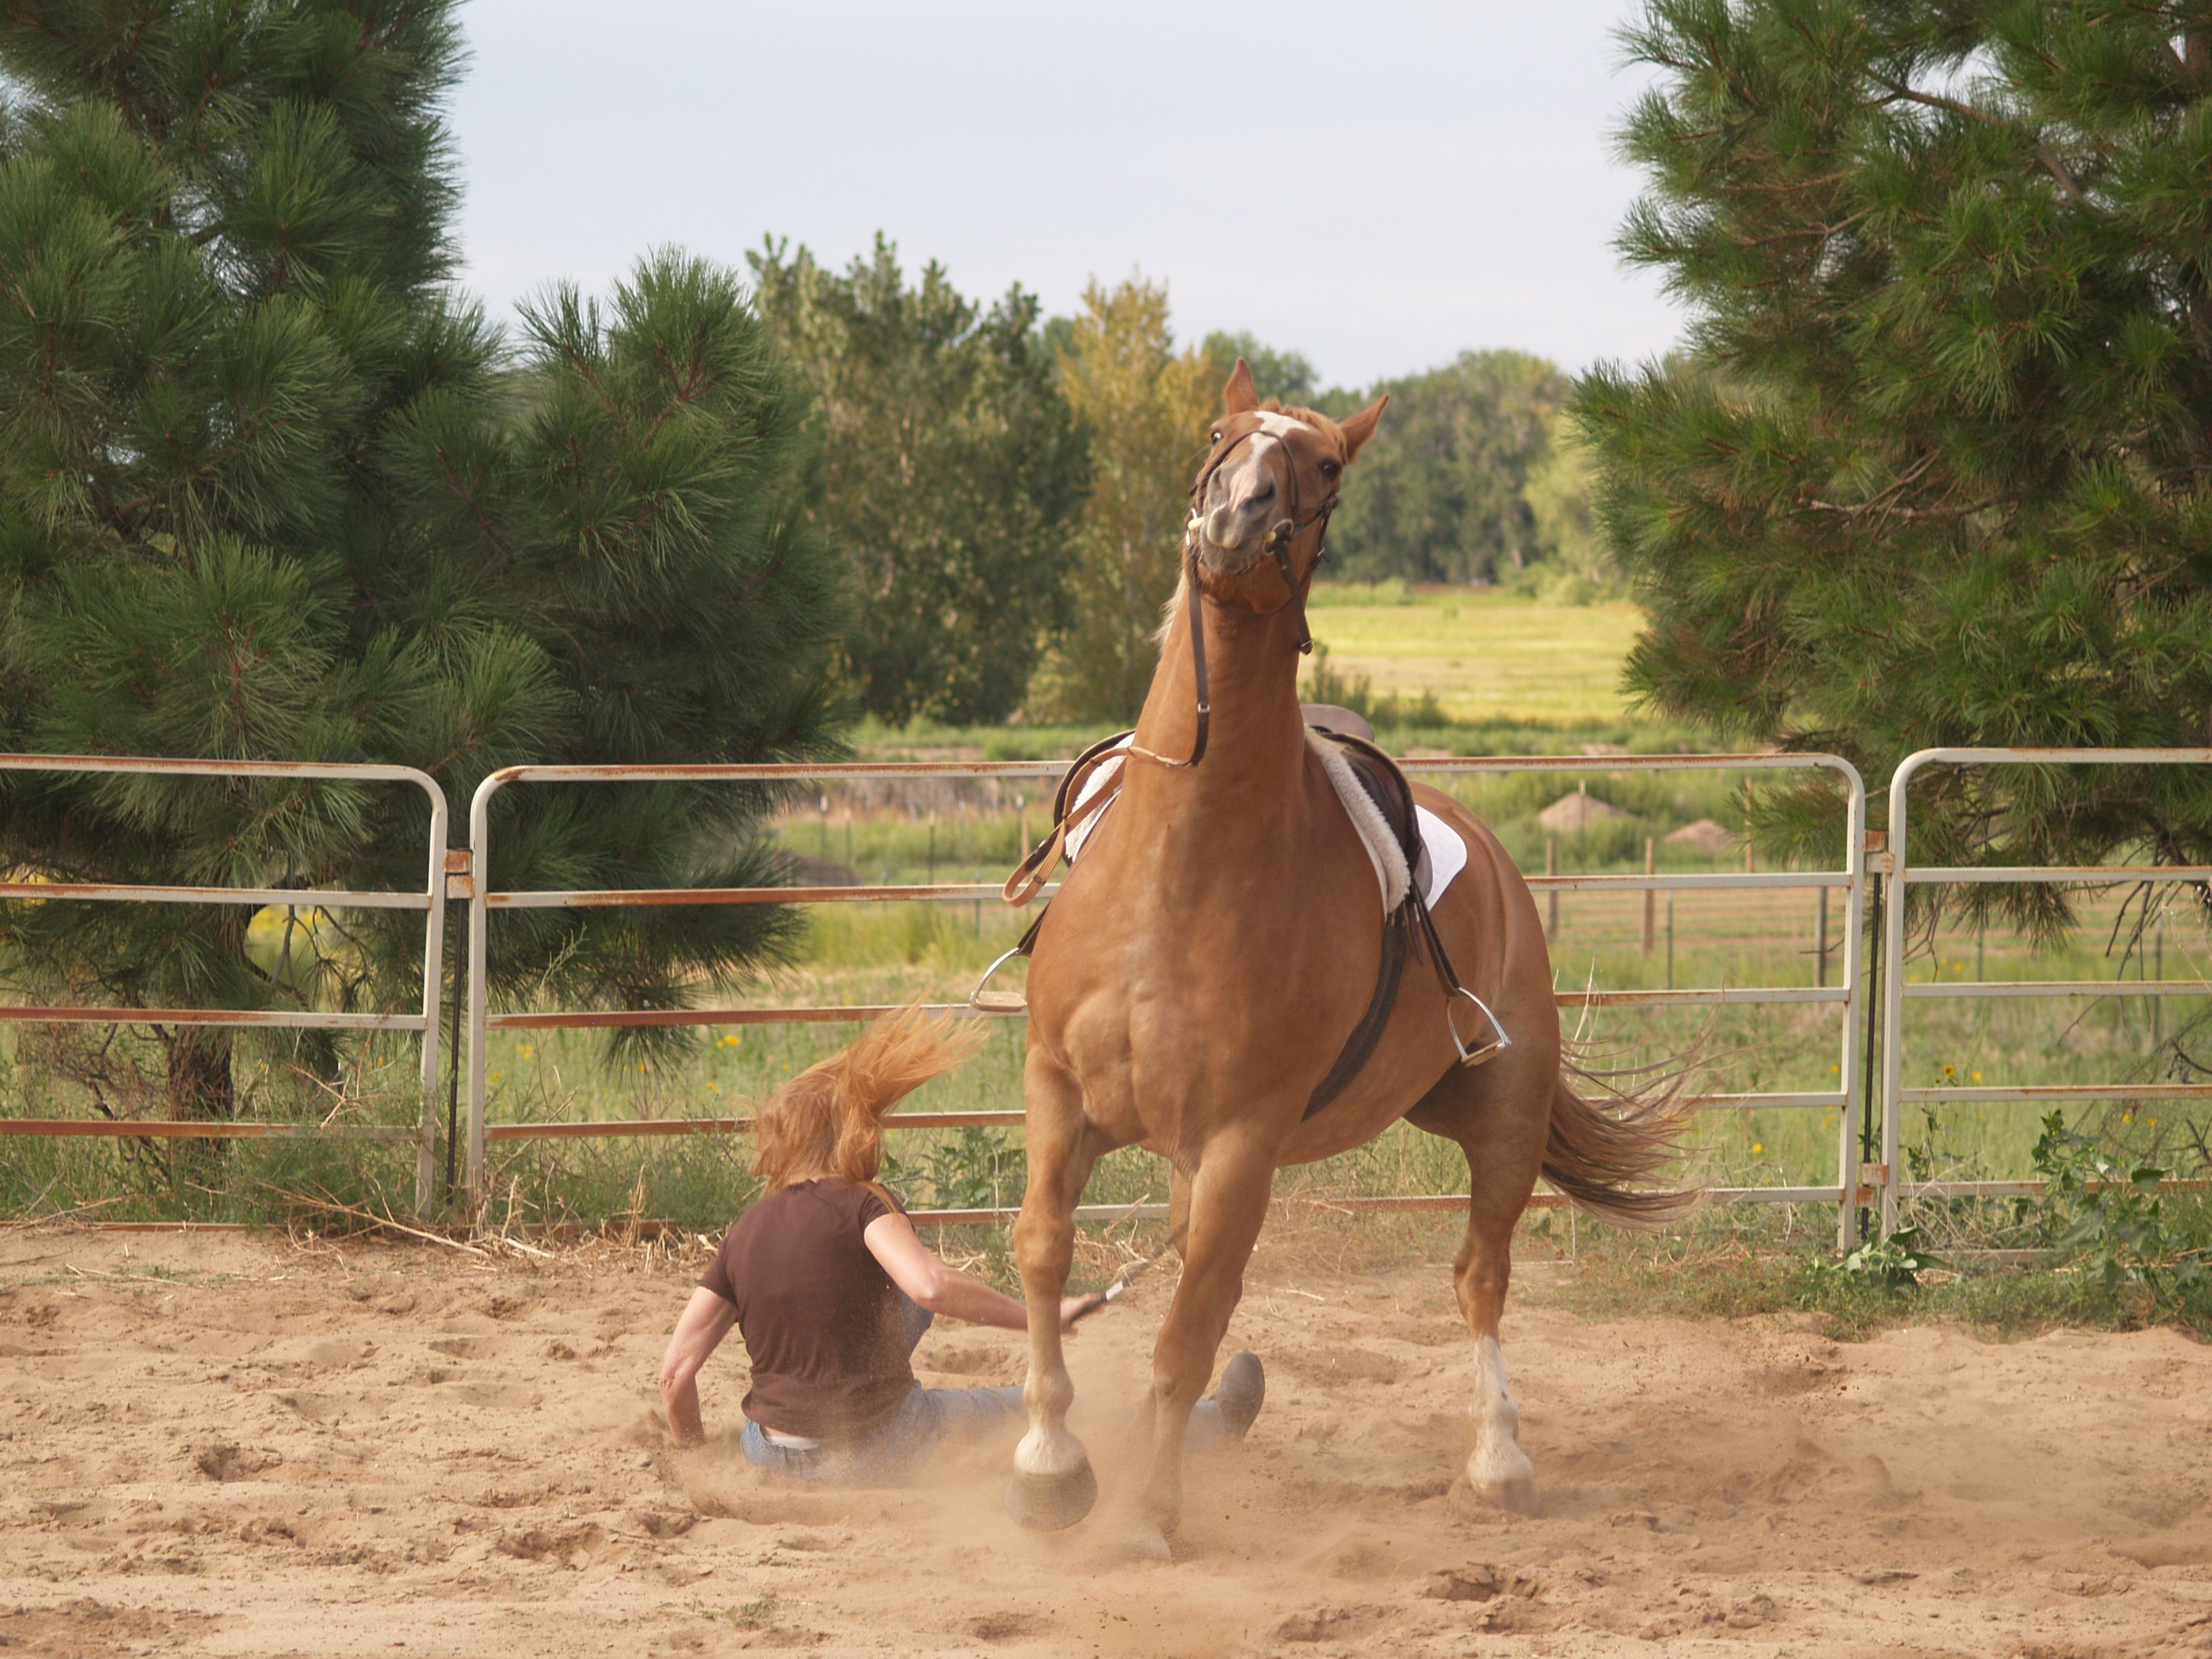 images How to Not Fall Off a Horse